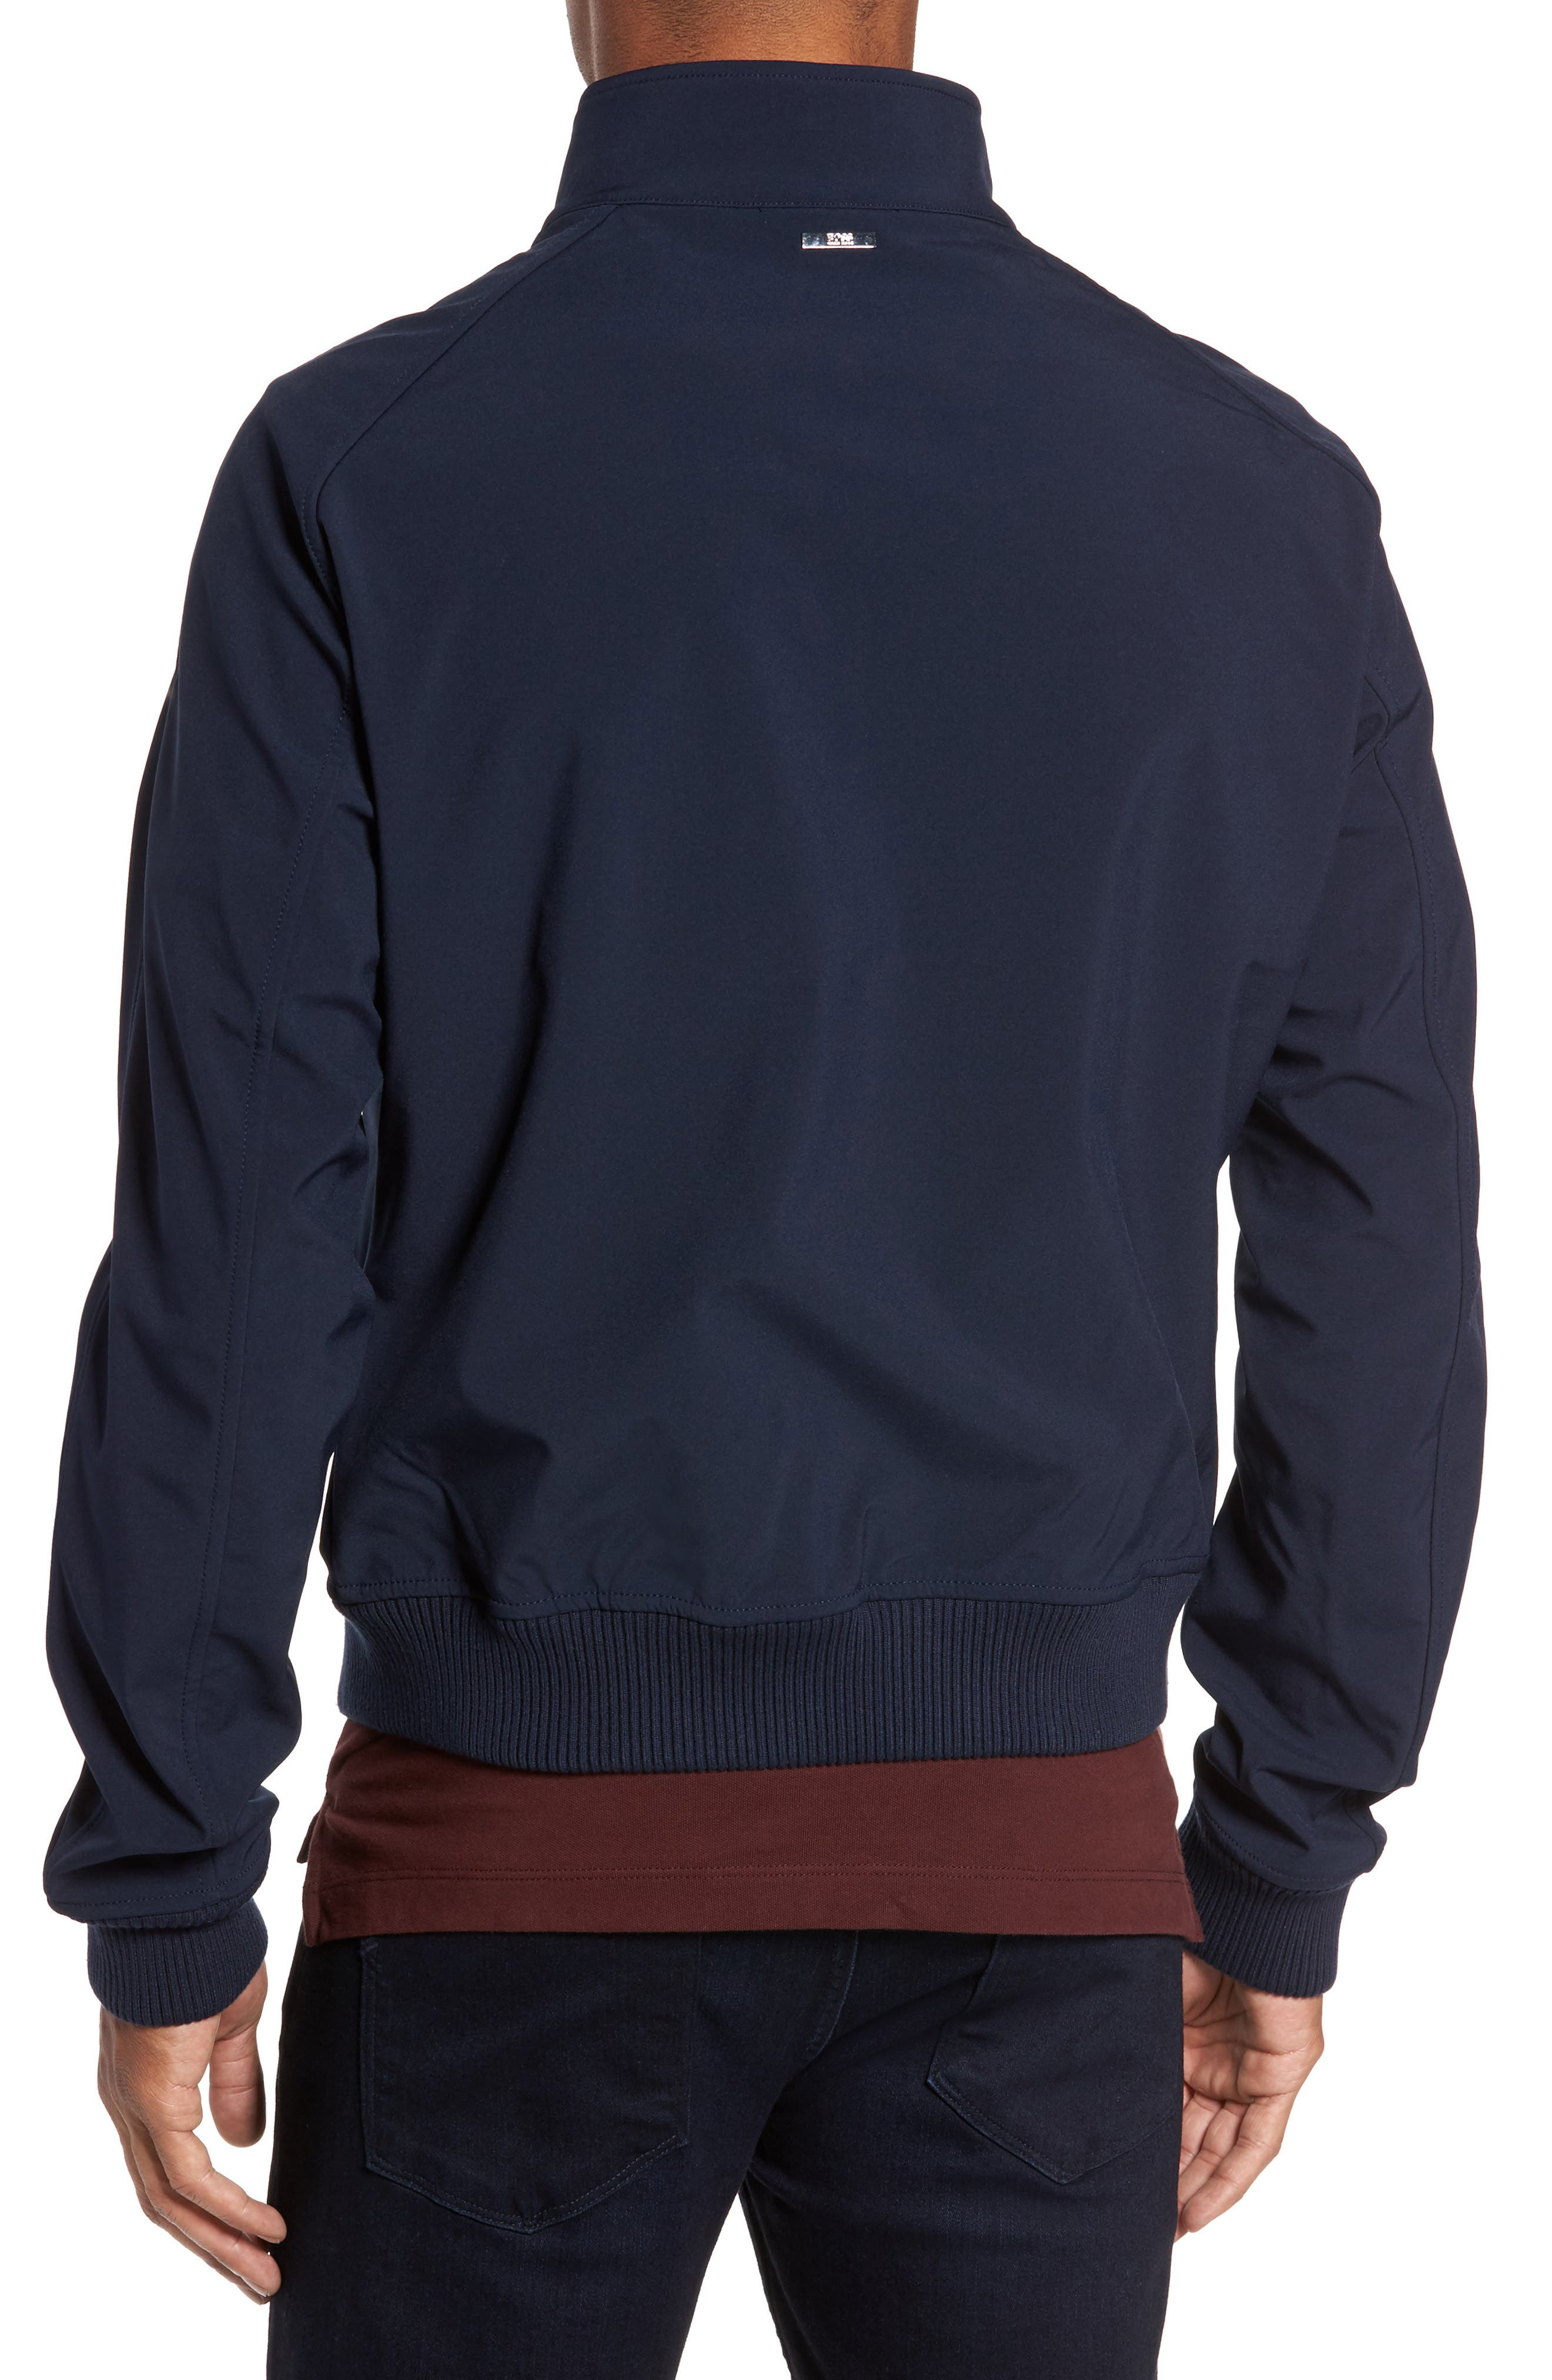 Corva Technical Jacket,                             Alternate thumbnail 2, color,                             Navy